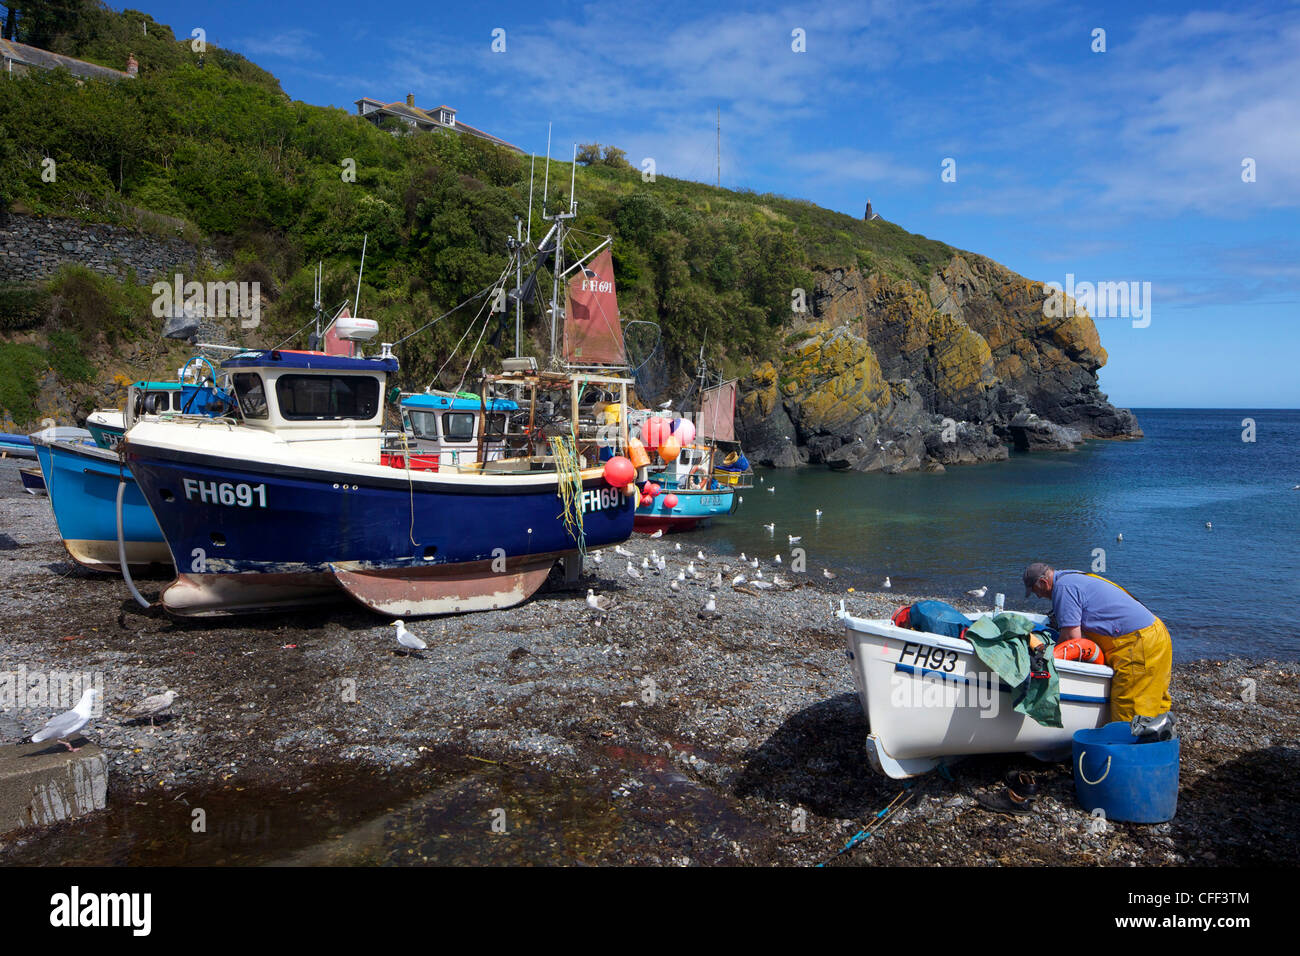 Cornish fisherman on beach at Cadgwith, Lizard Peninsula, Cornwall, England, United Kingdom, Europe - Stock Image